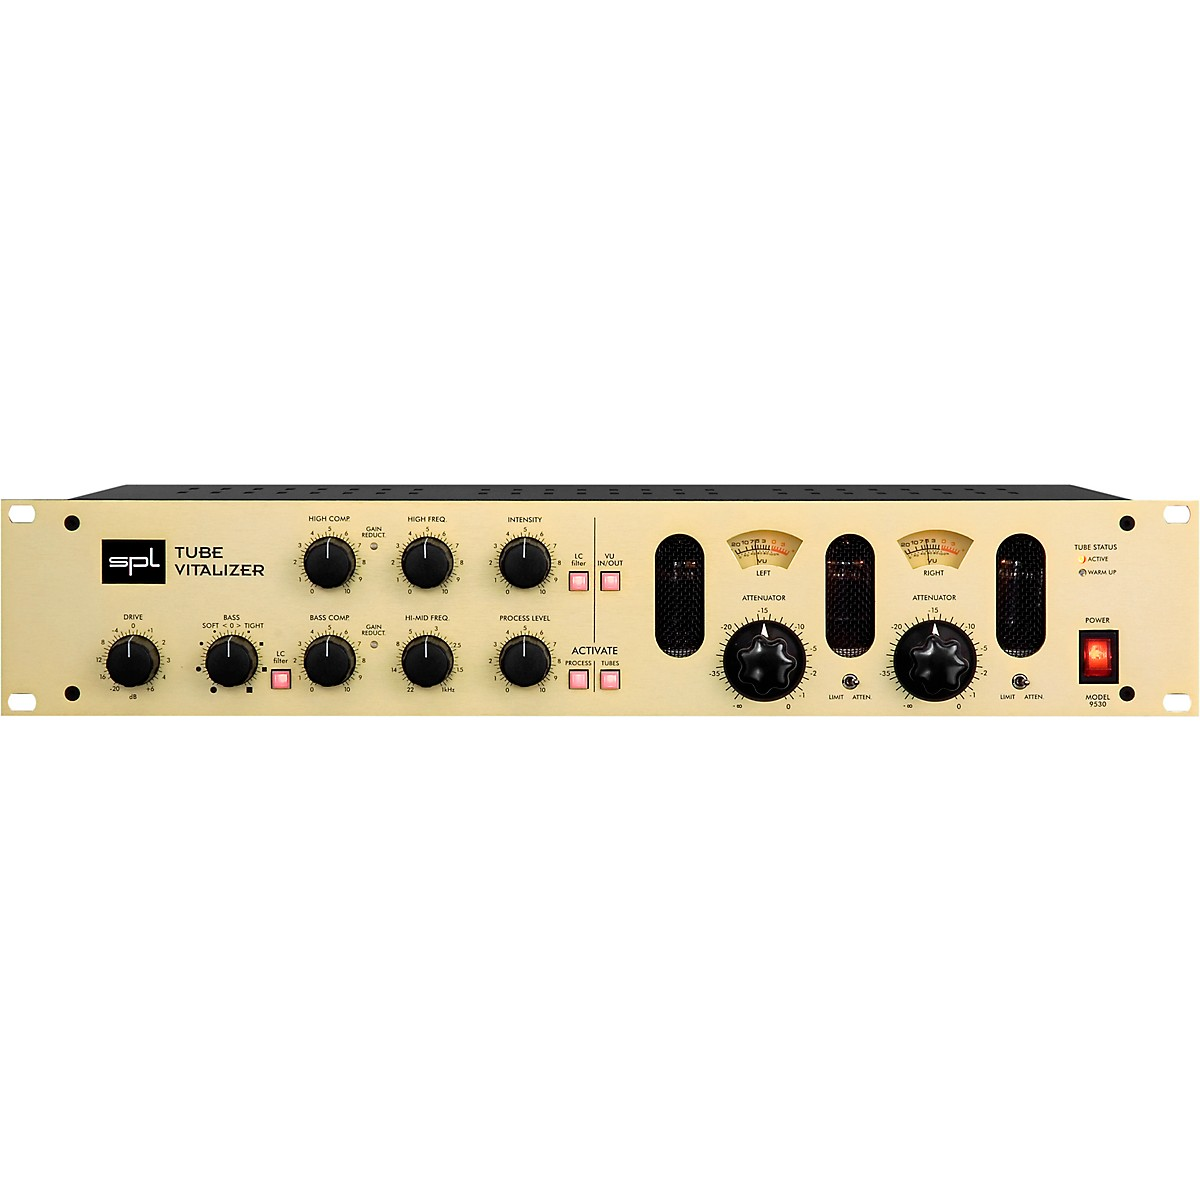 SPL Tube Vitalizer Program Equalizer